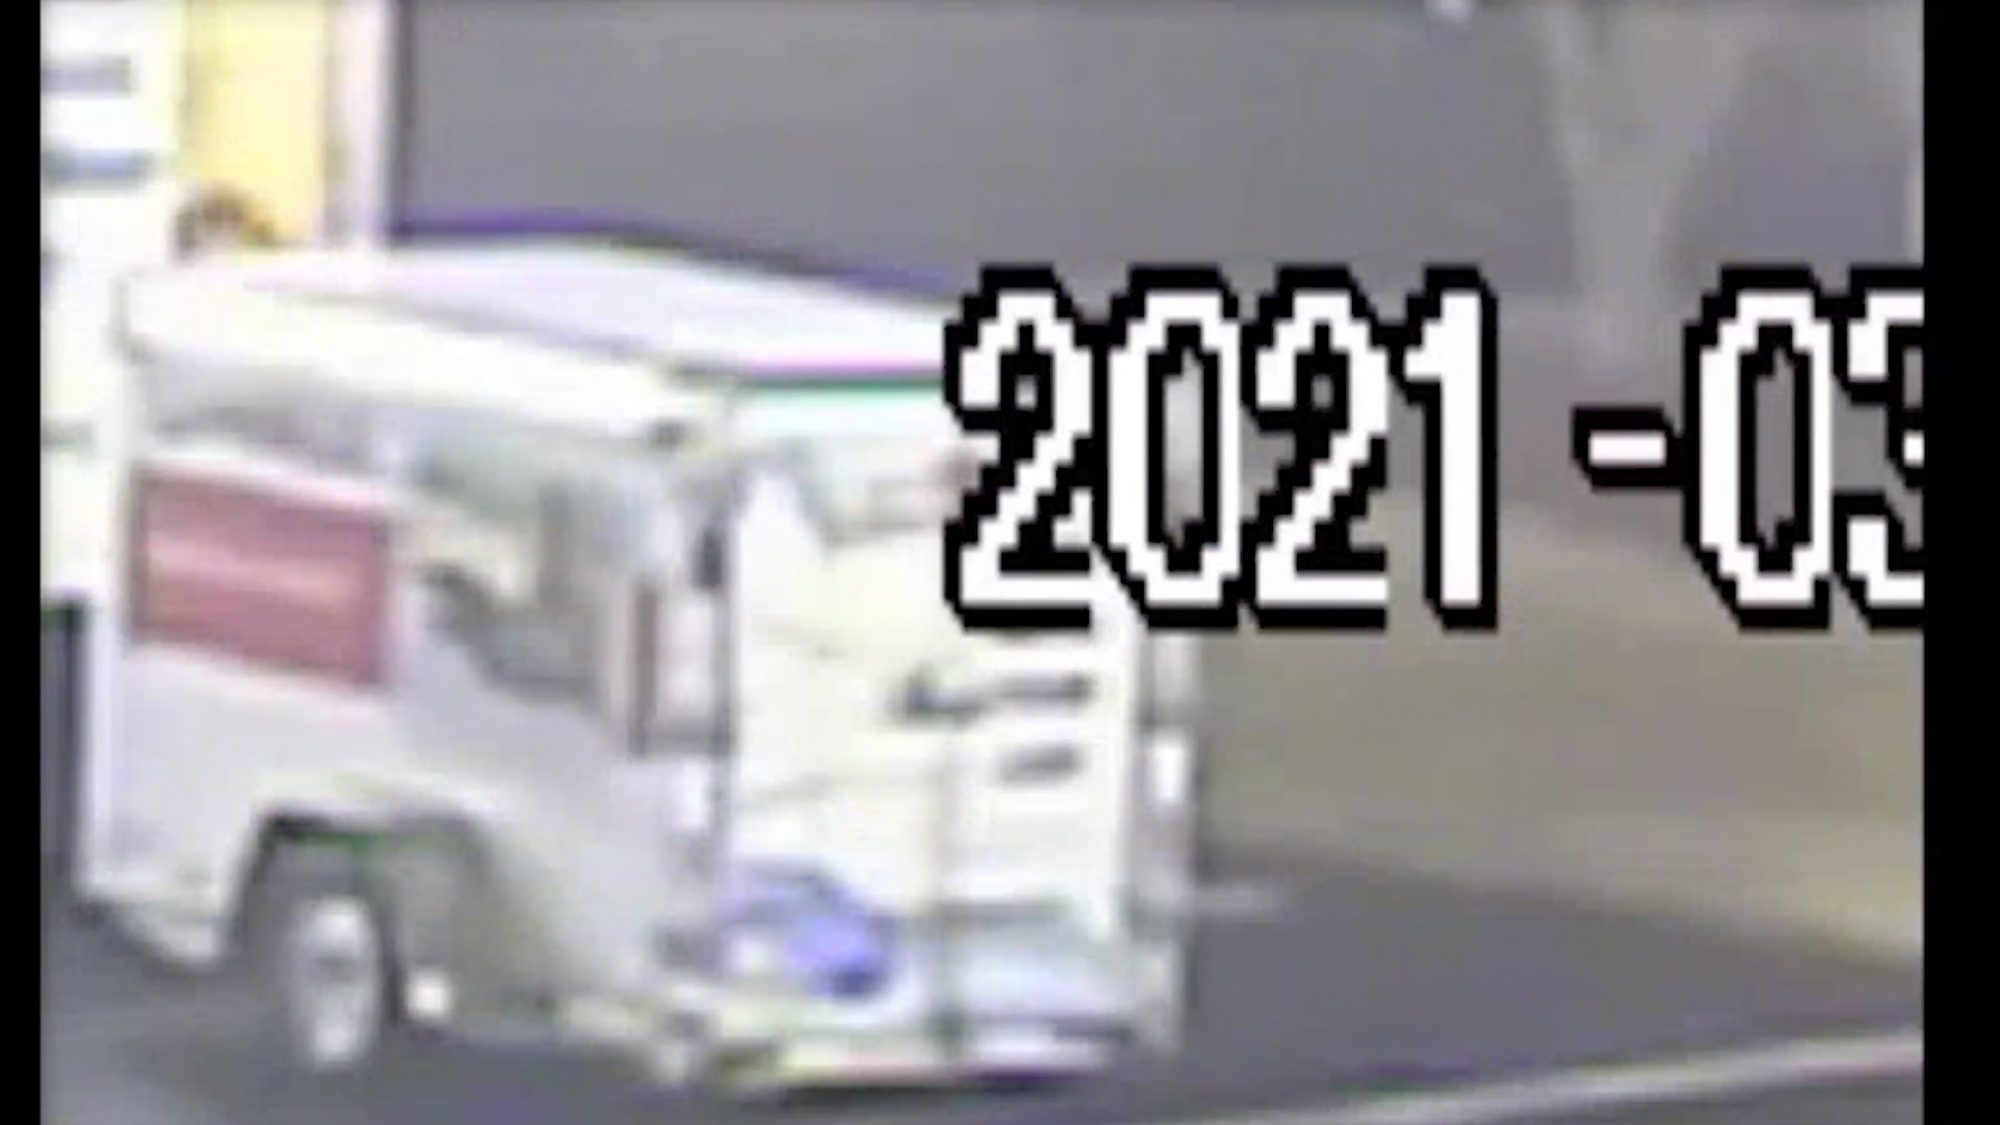 On March 3, 2021, the victim's Uhaul containing all of his belongings was stolen